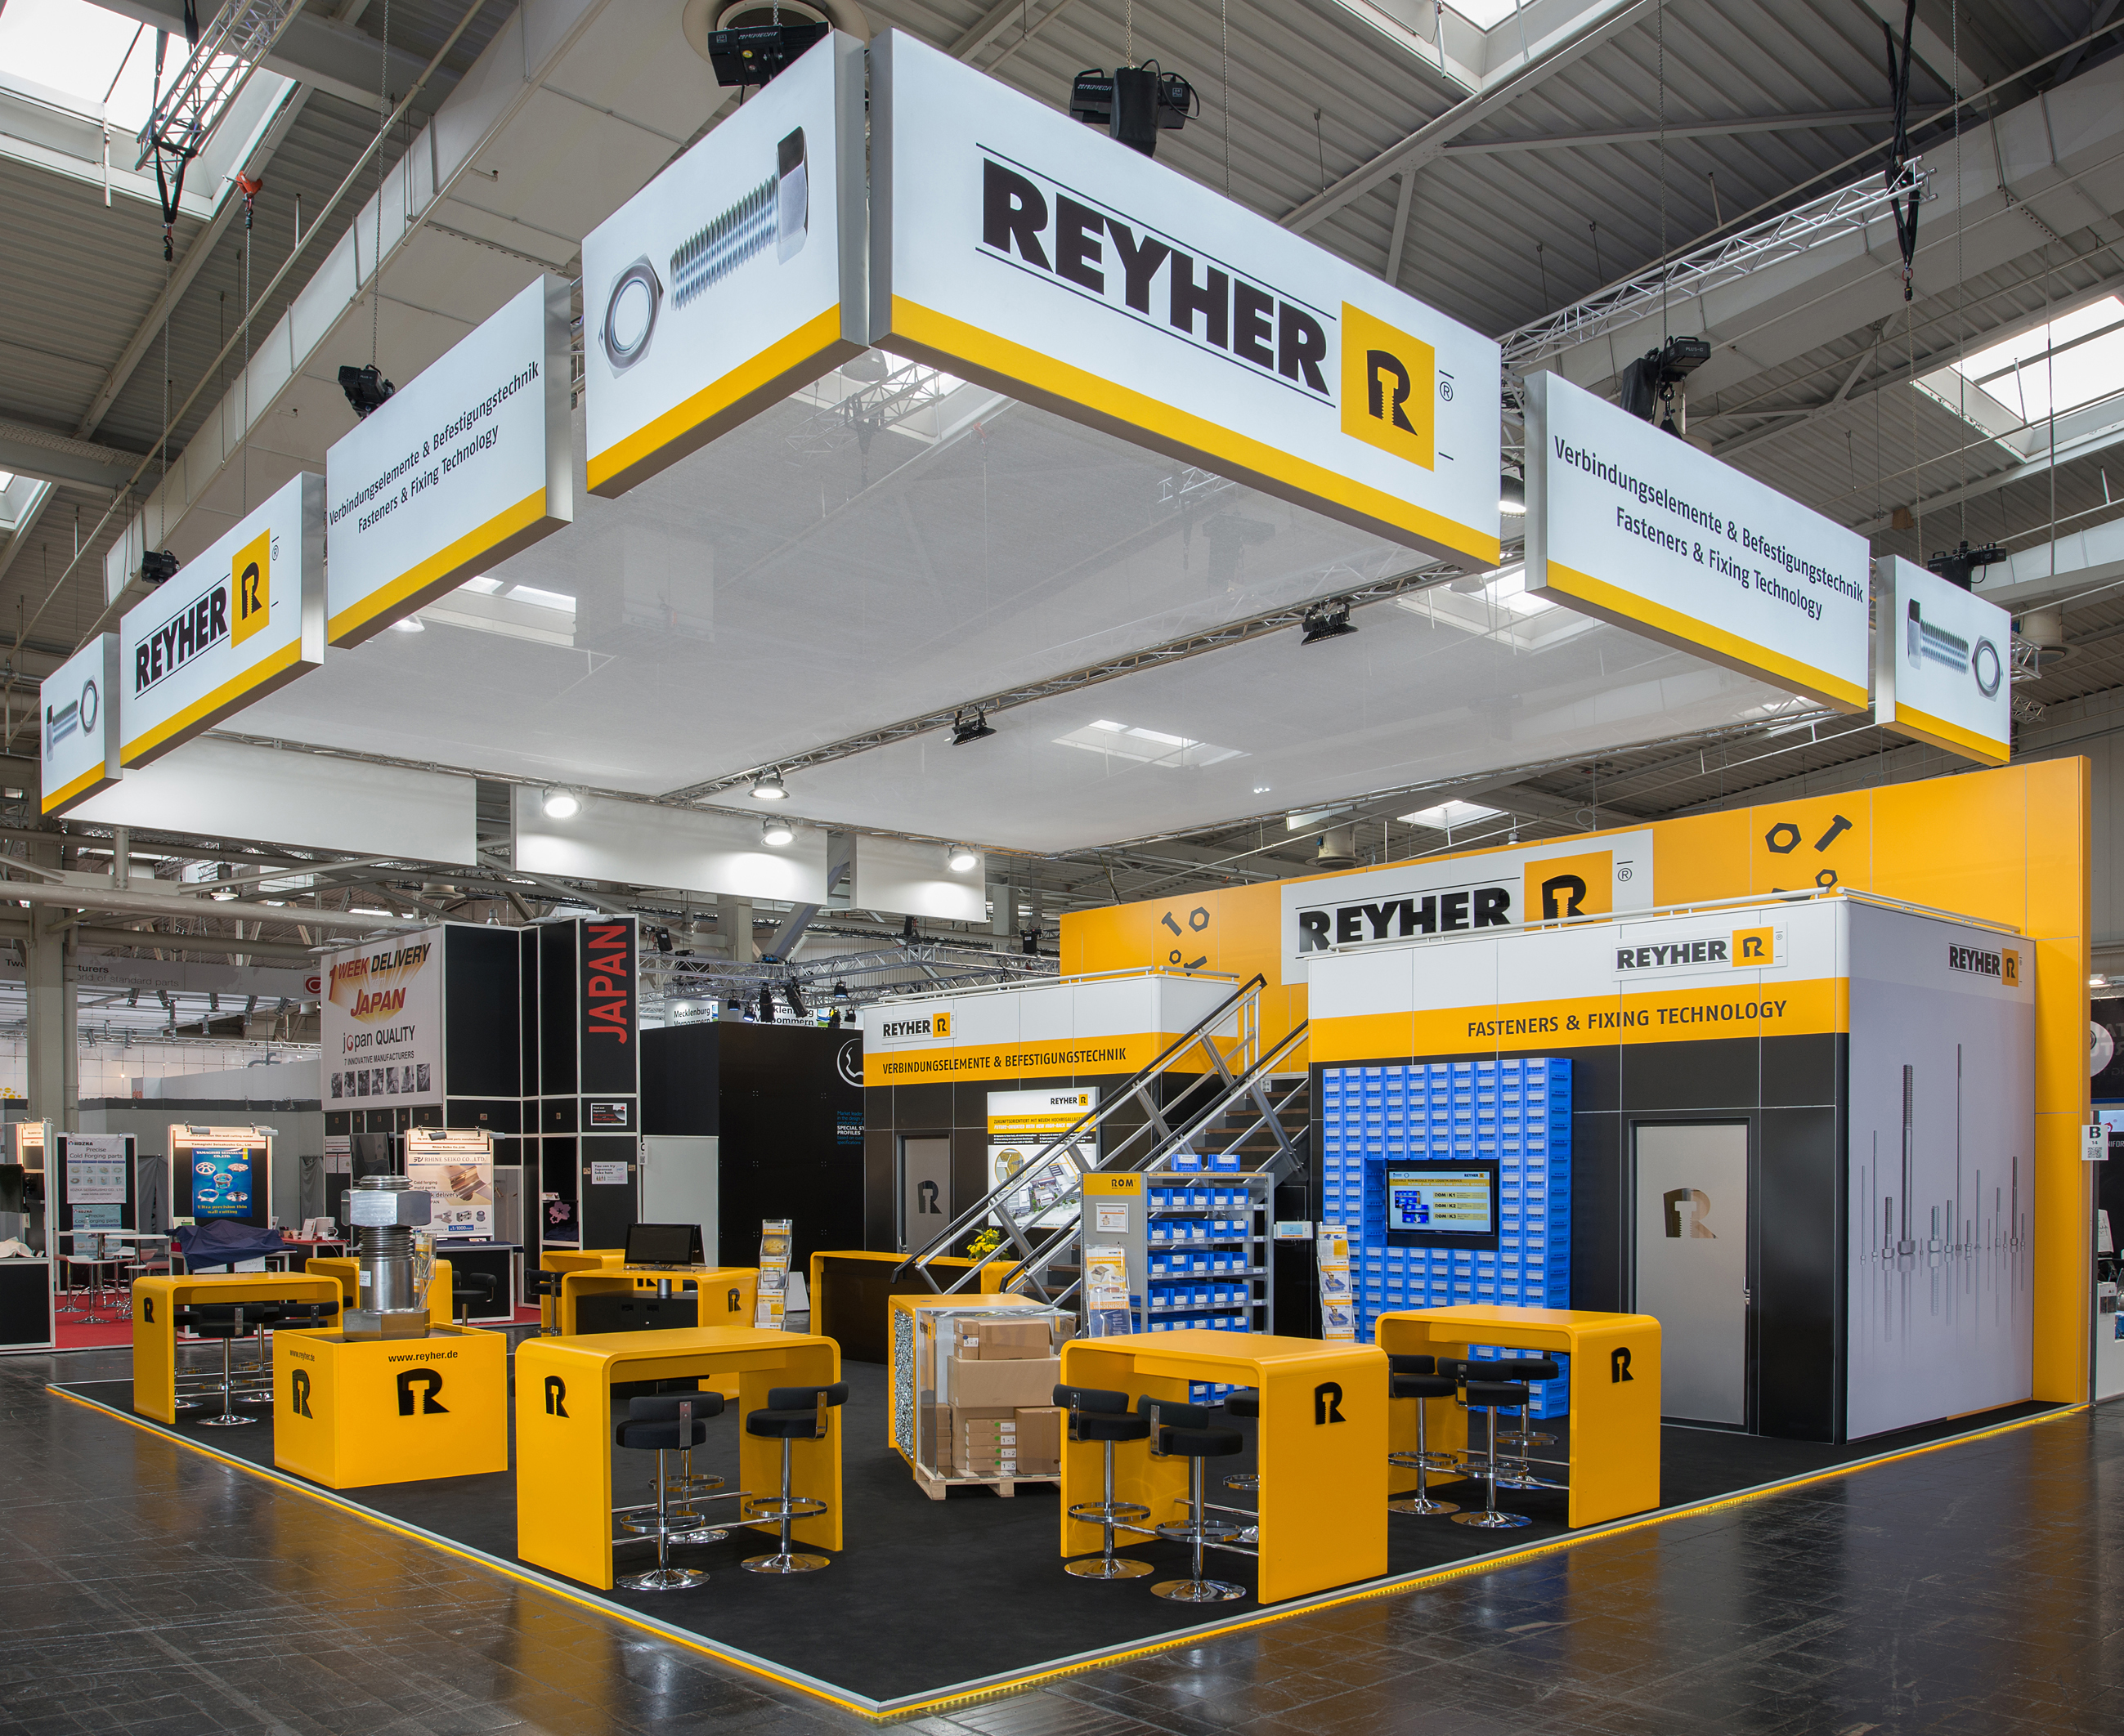 hannover messe 2018 effiziente c teile versorgung am reyher stand f reyher nchfg gmbh co. Black Bedroom Furniture Sets. Home Design Ideas